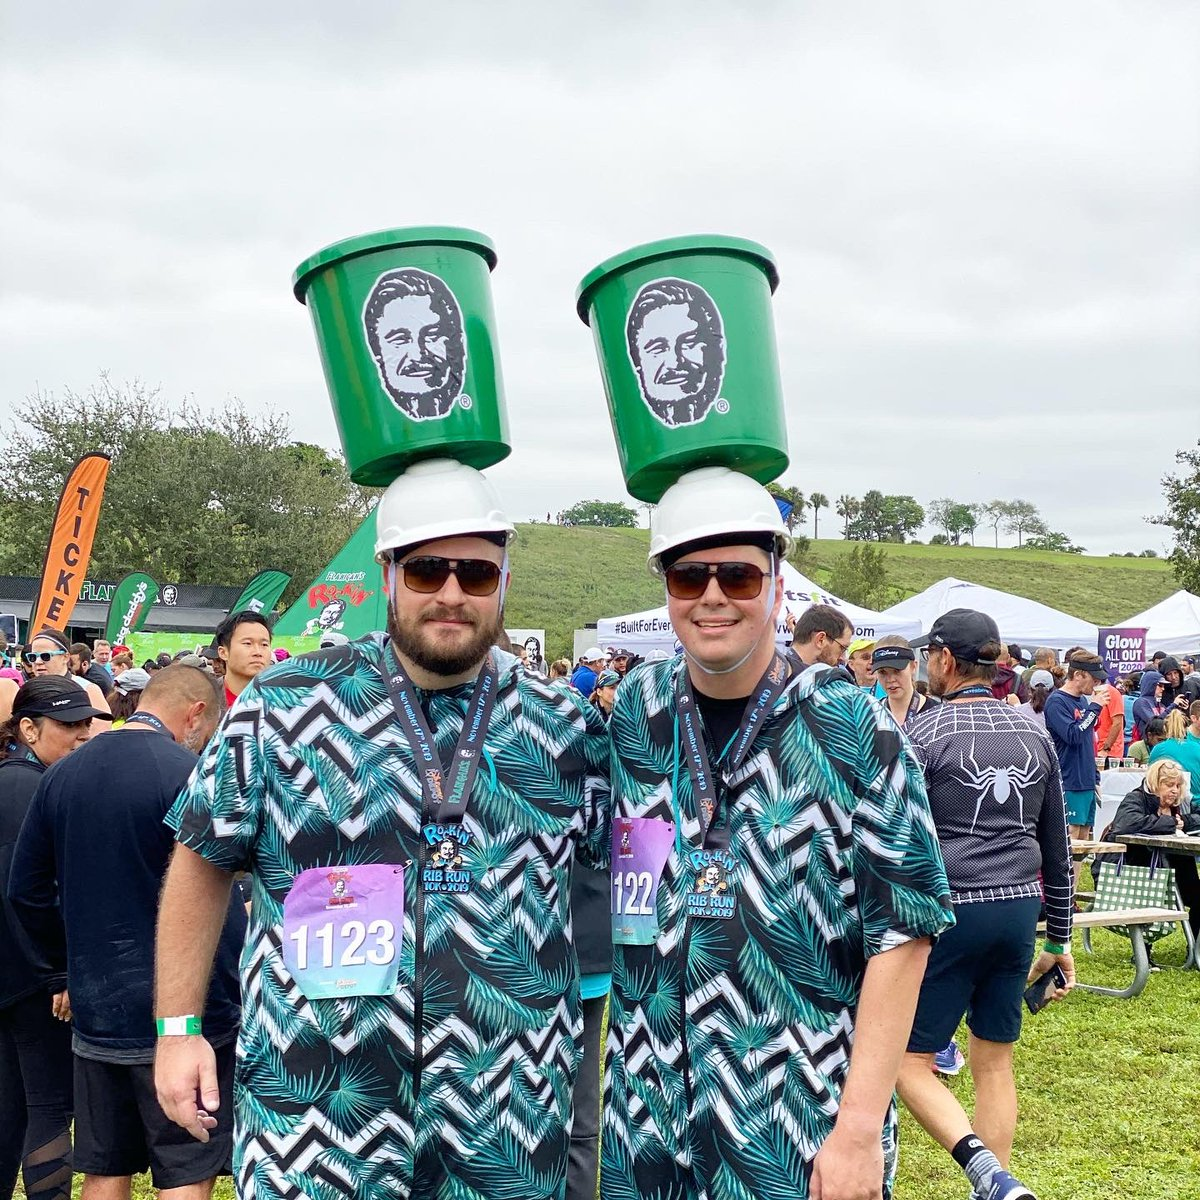 2,500 runners headed to the ribs, beer, and wine at the finish line. Thank you to everyone who came out to the 7th annual Flanigan's Rockin' Rib Run 10k! #ribrun https://t.co/lJMeZzdZxP